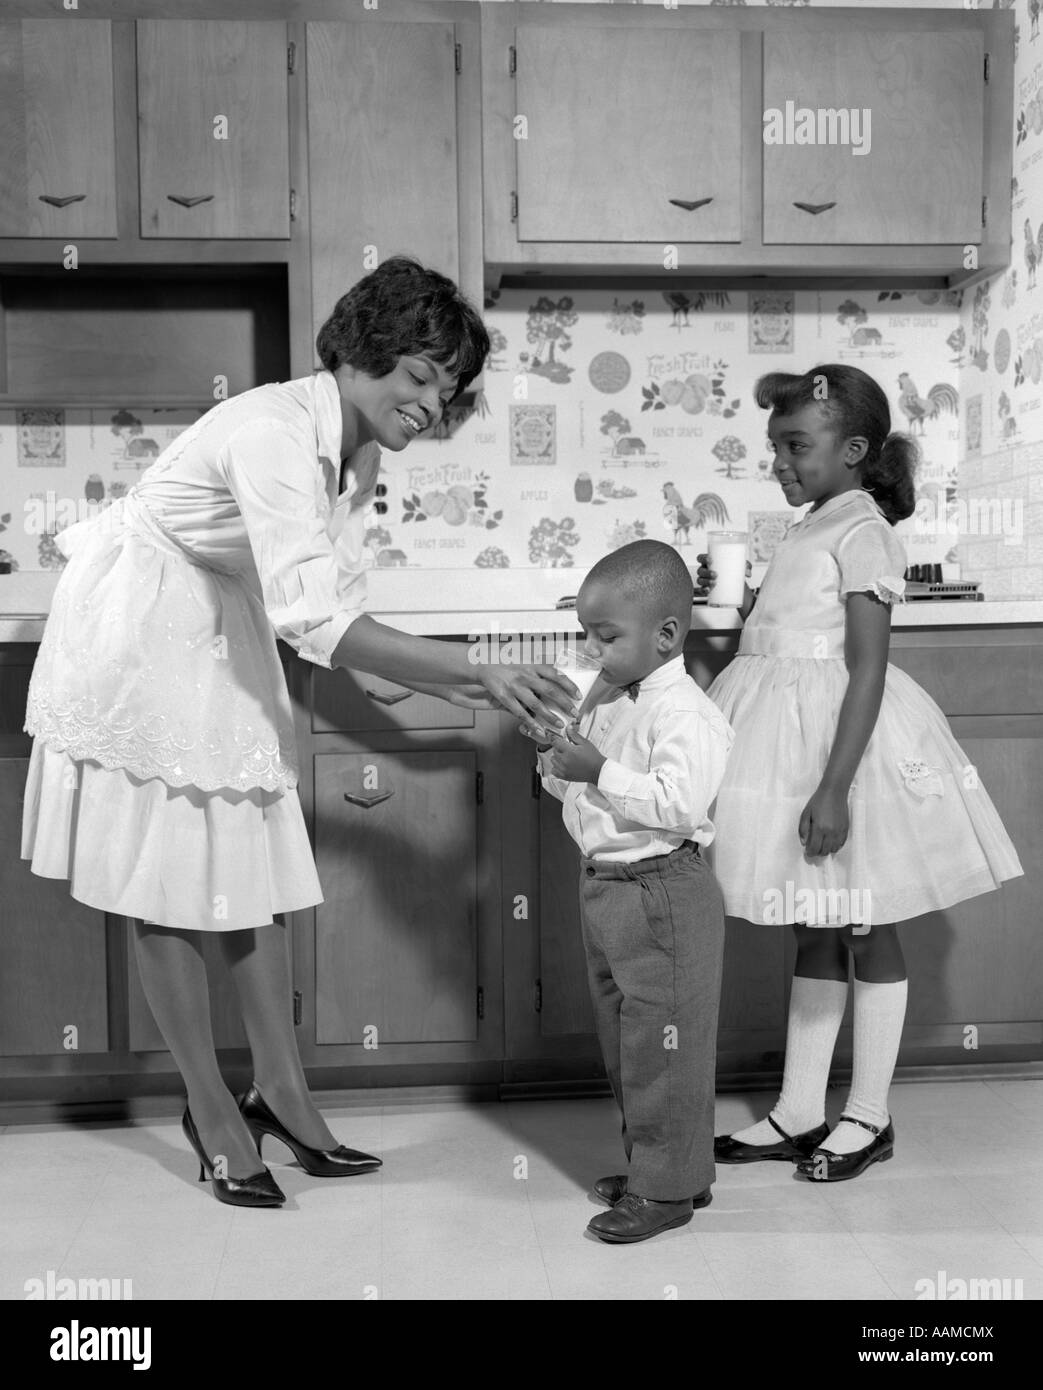 Unique 1960s SMILING AFRICAN AMERICAN WOMAN MOTHER IN APRON AND PUMPS  FM68